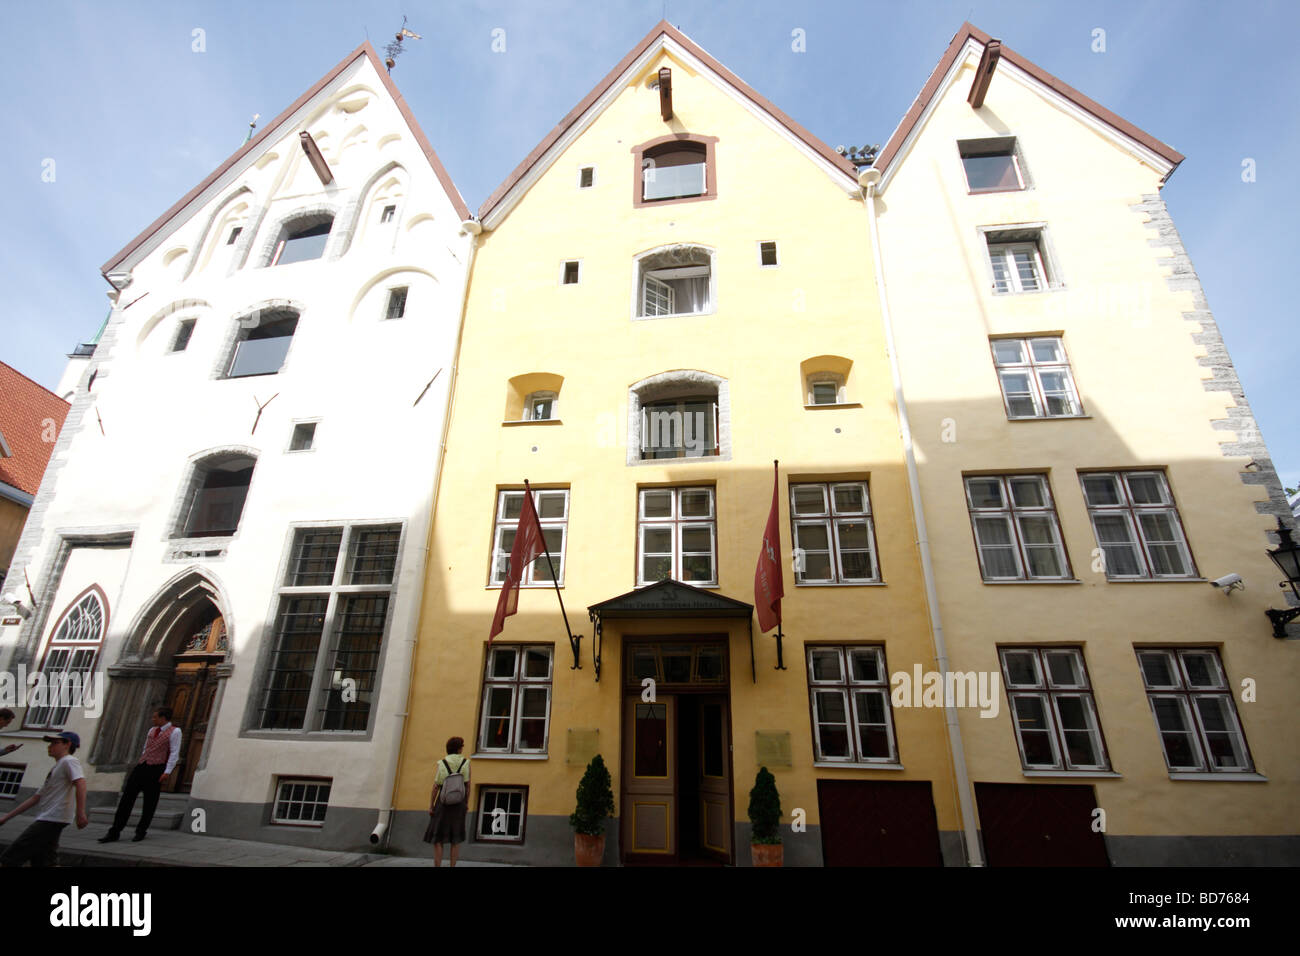 Wide Angle view of the Three Sisters Hotel in Old Town Tallinn, Estonia, an upscale hotel - Stock Image